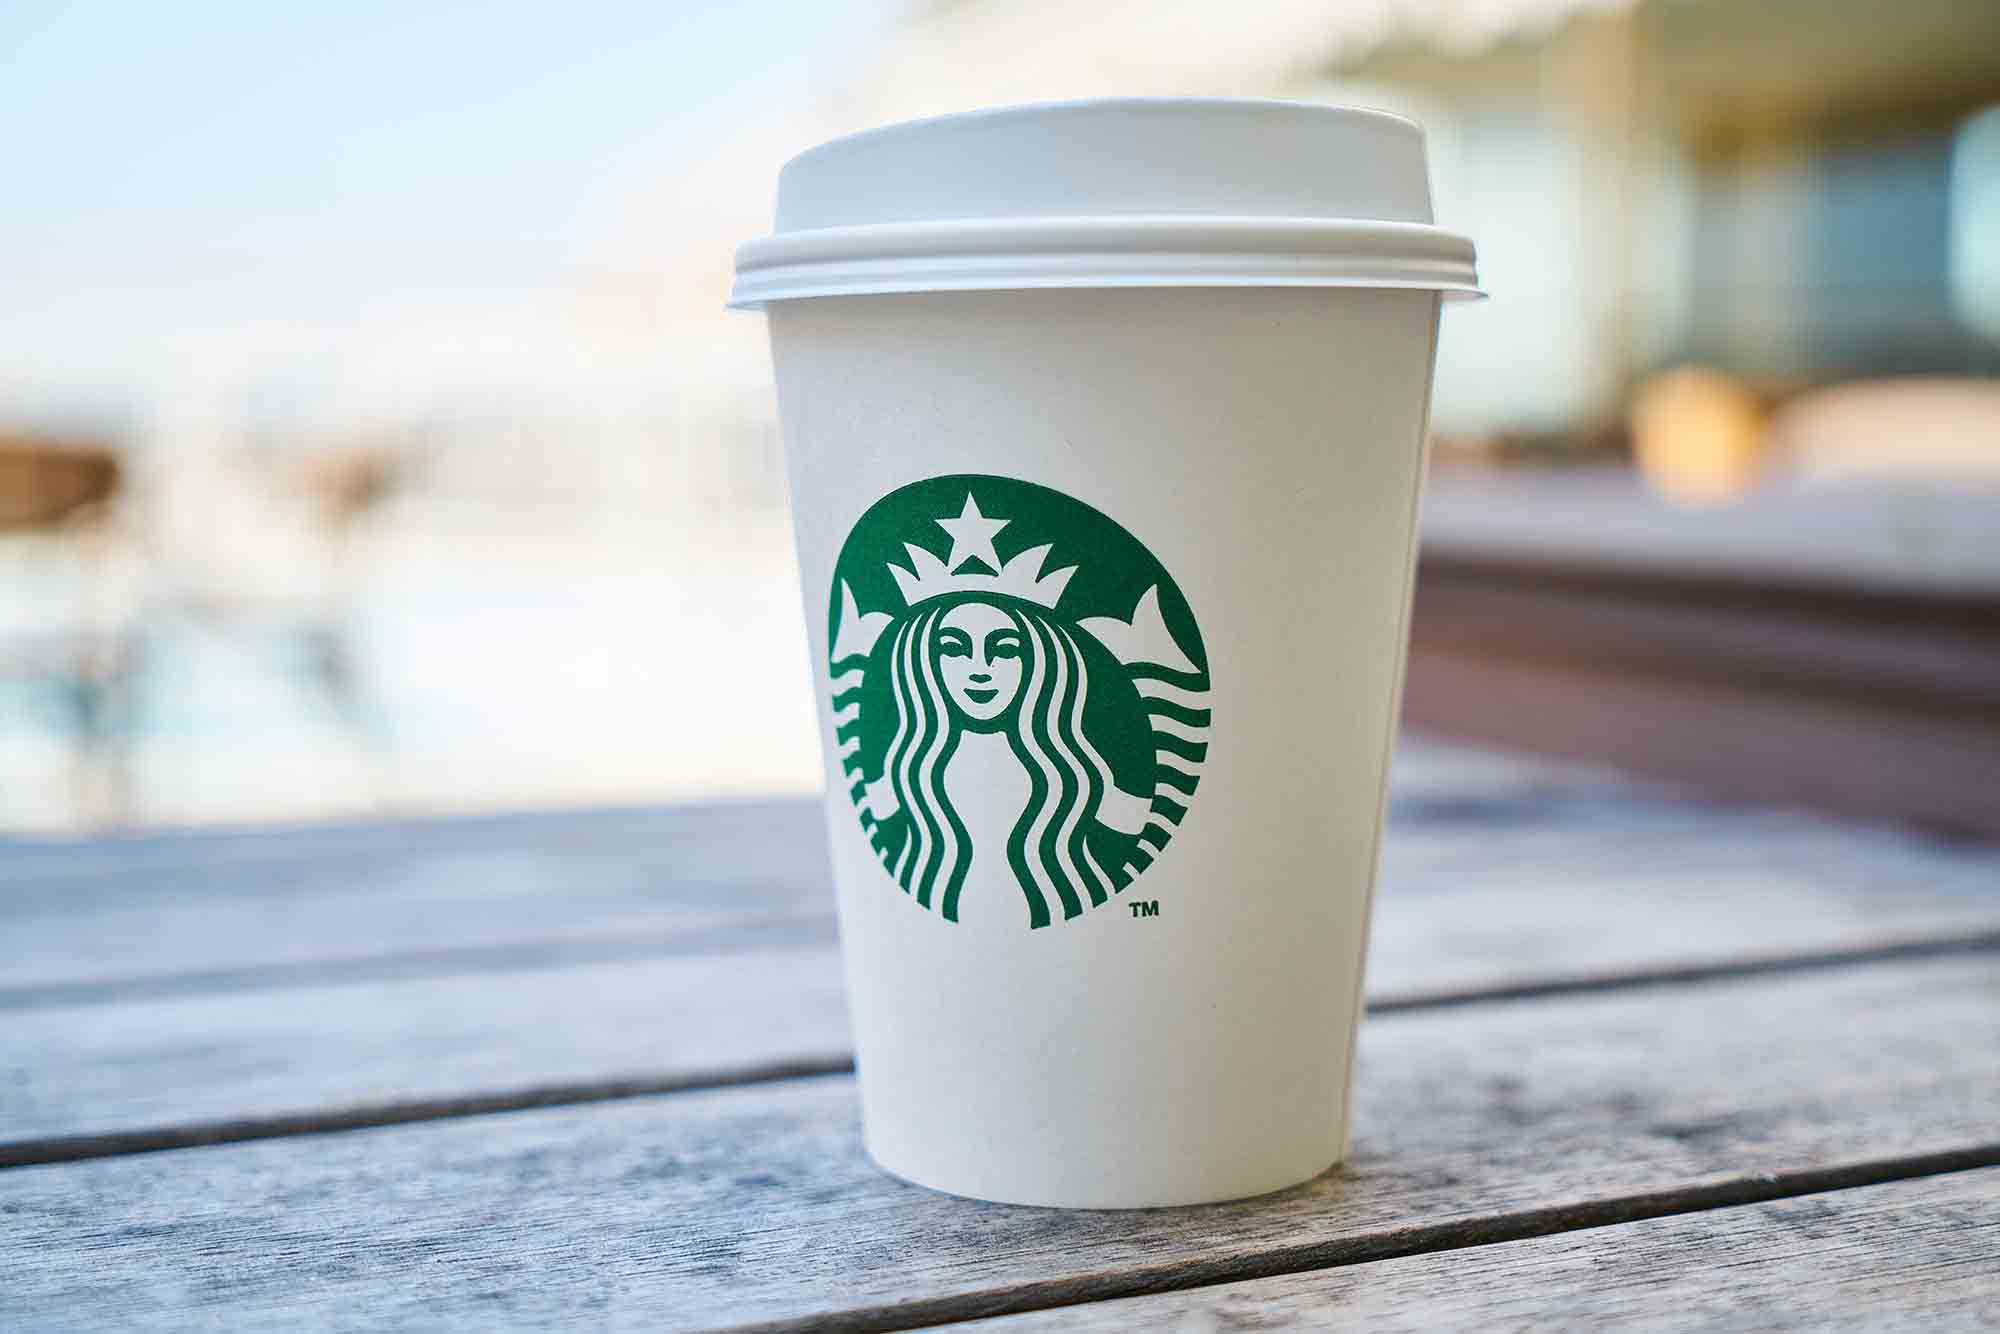 starbucks cup on bench